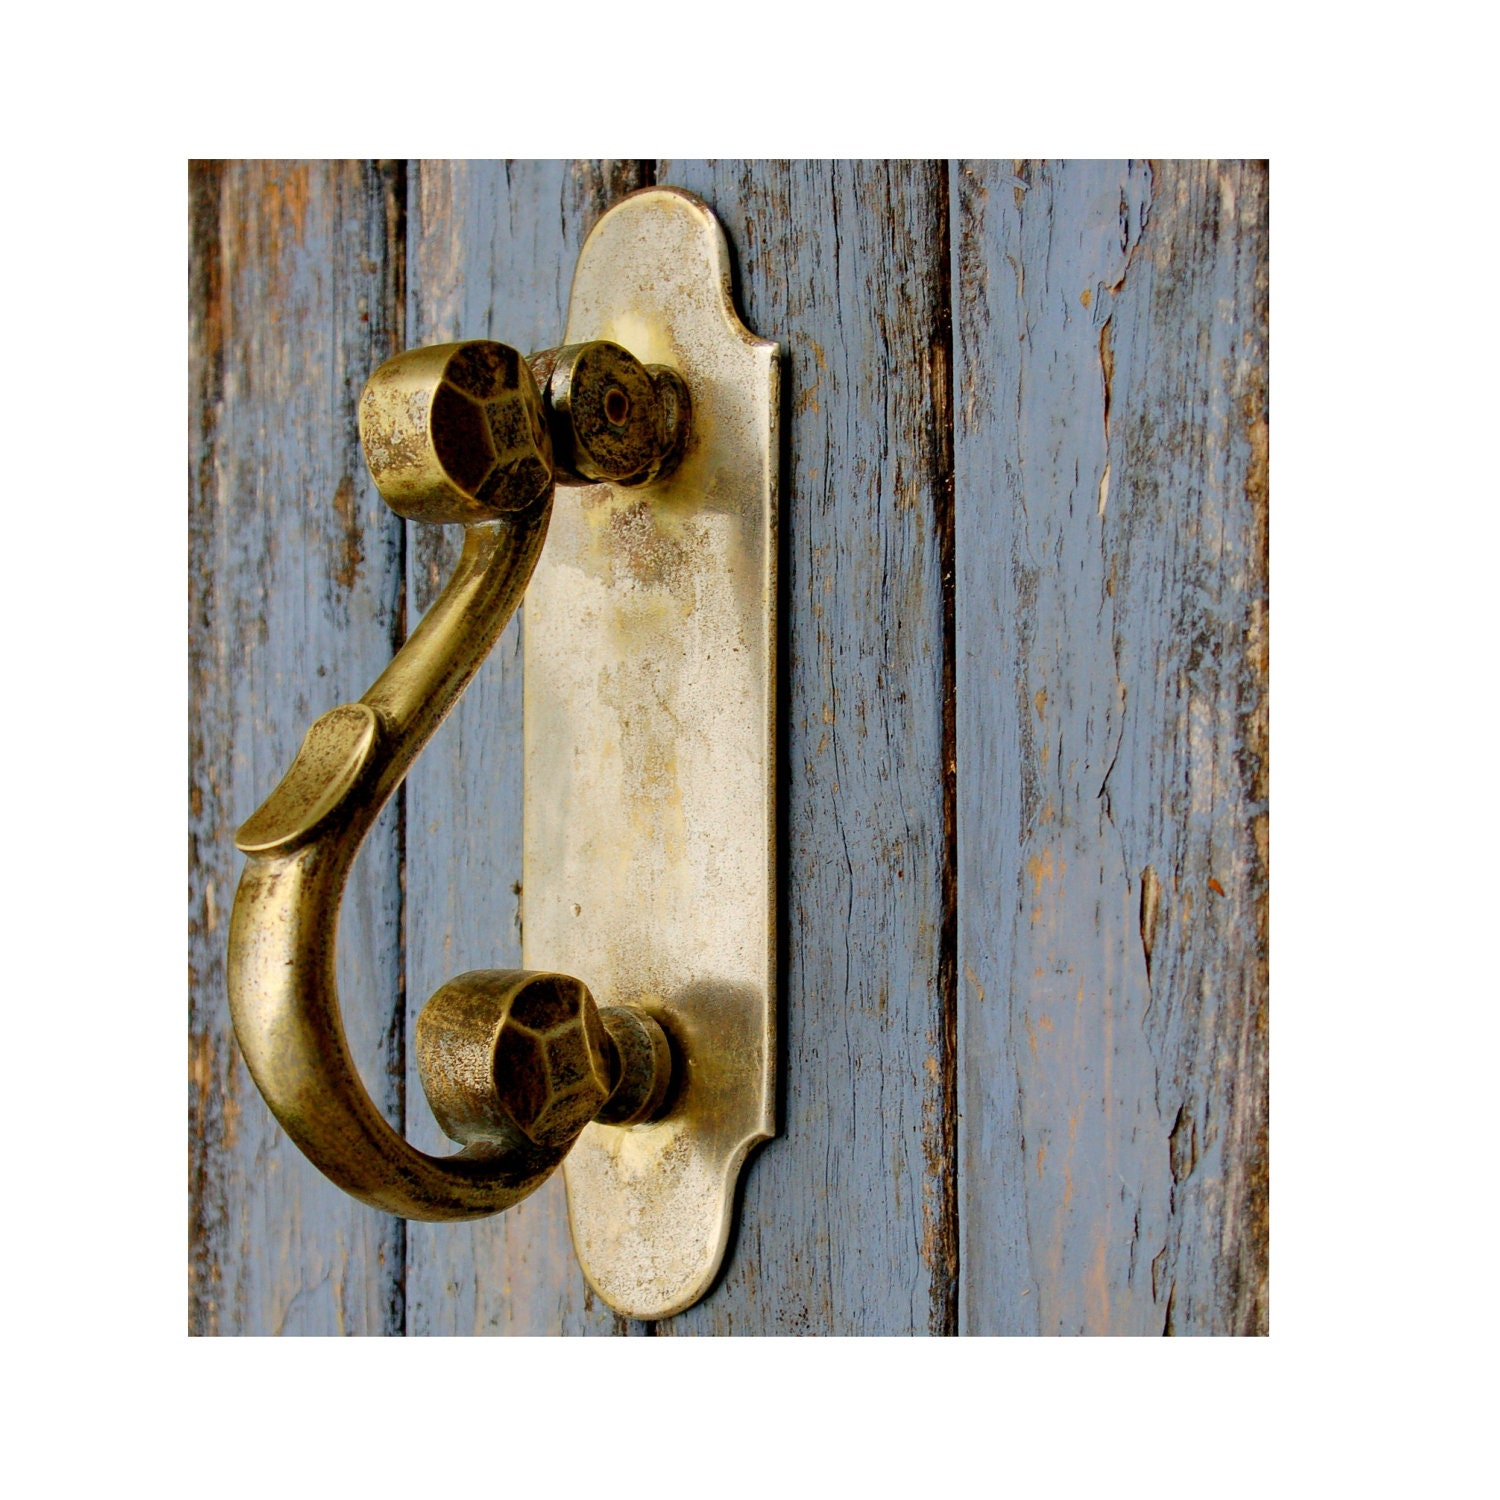 Antique scrolling s shaped door knocker french by knockplease - Antique brass door knocker ...